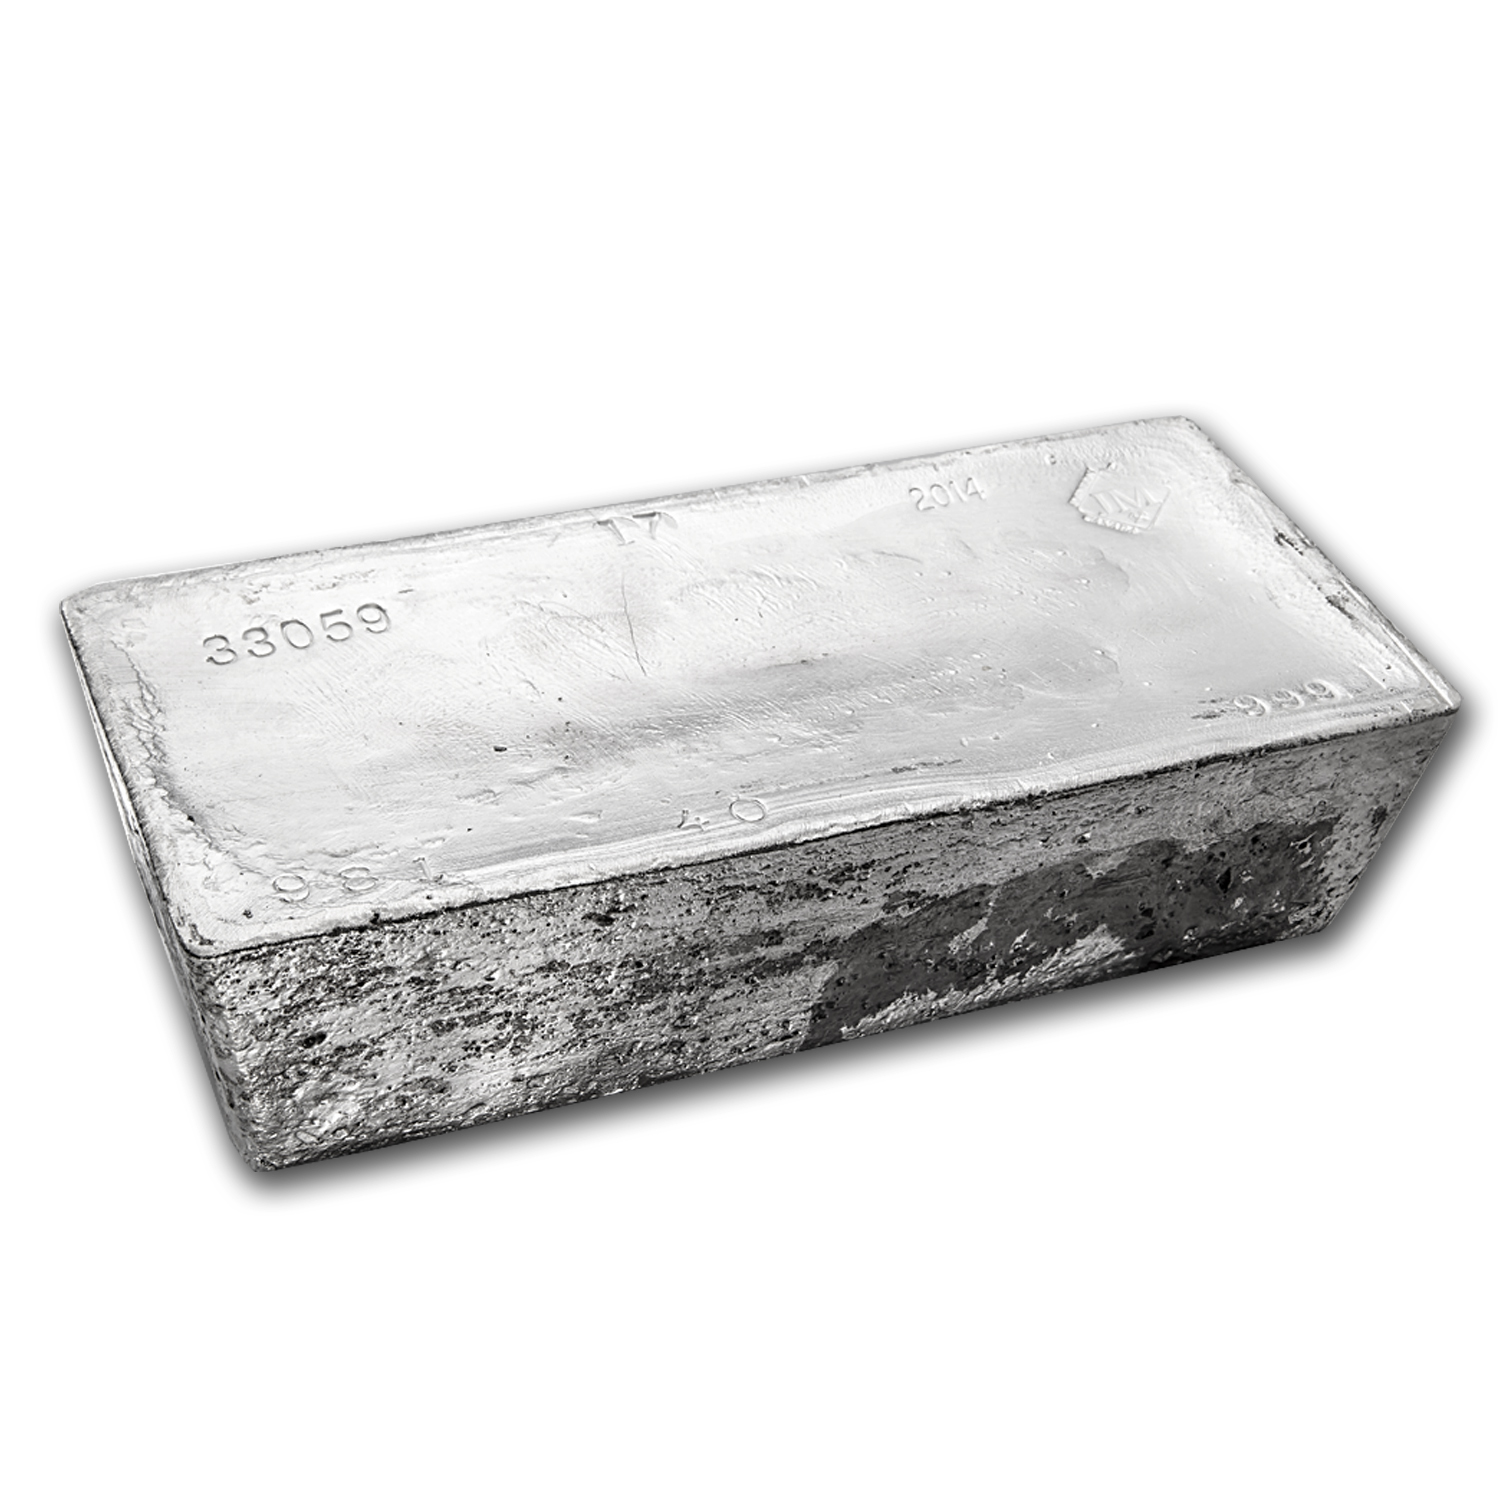 906.30 oz Silver Bar - Johnson Matthey